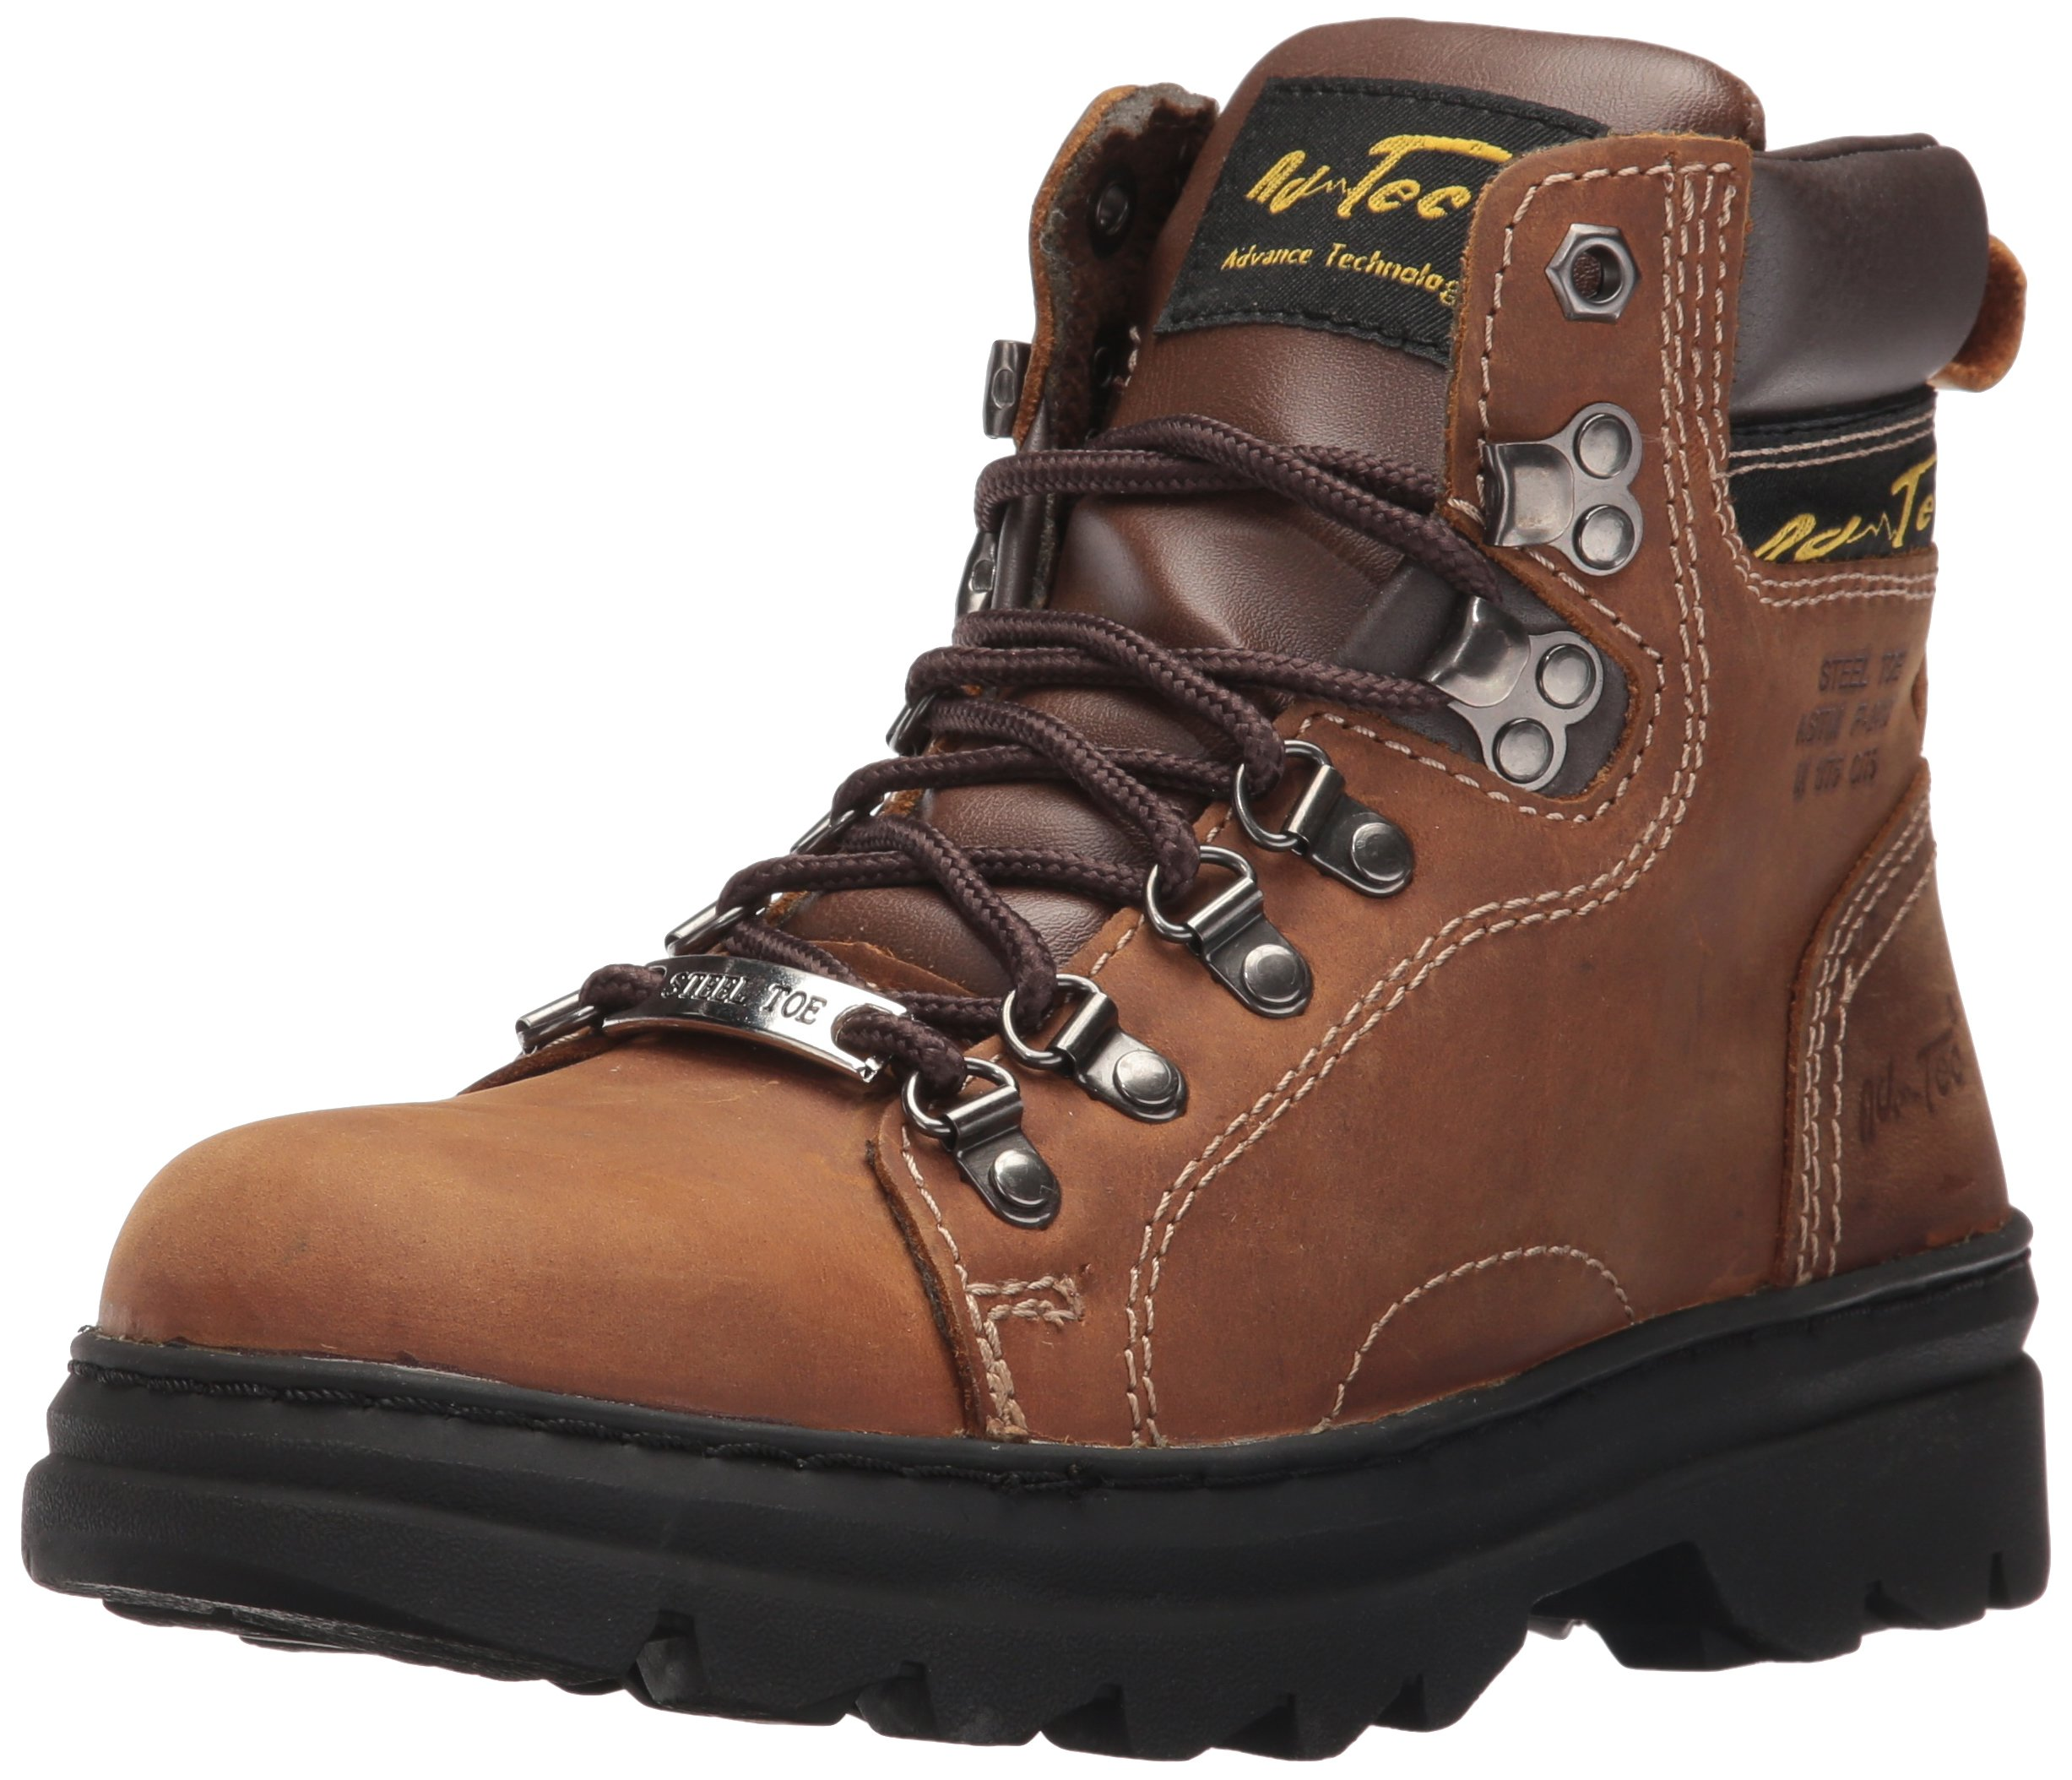 Adtec Men's 1977 6'' Steel Toe Hiker Work Boot, Brown, 8 W US